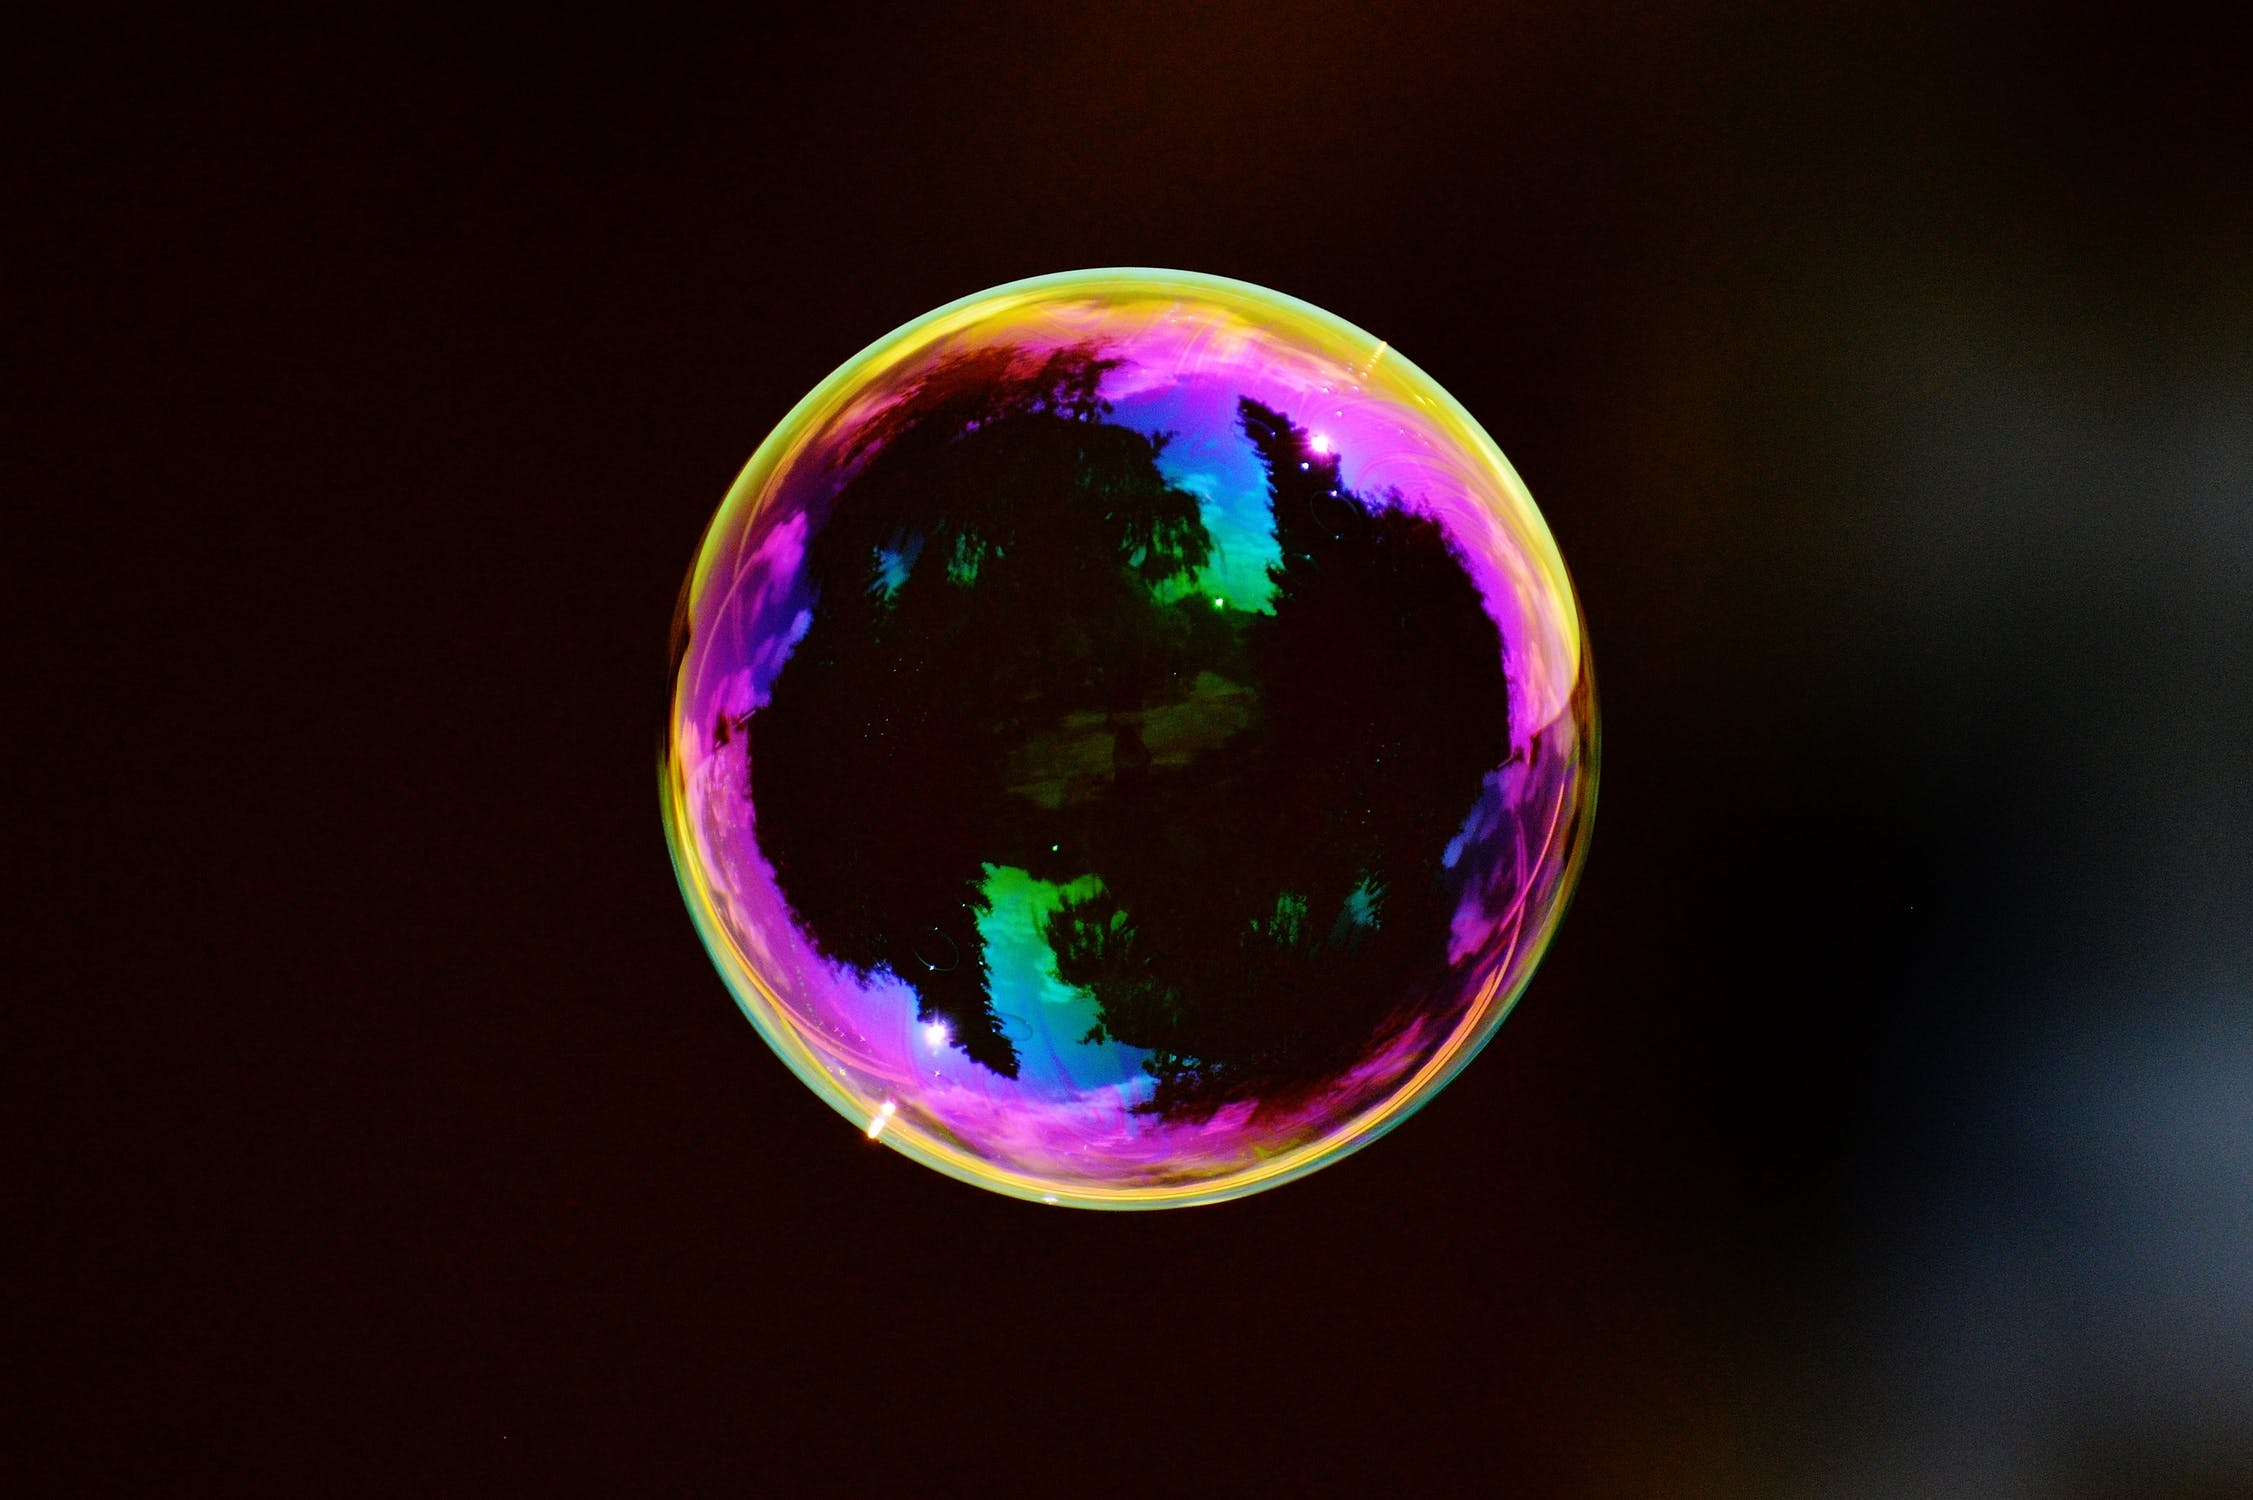 A soap bubble floating in front of a black background